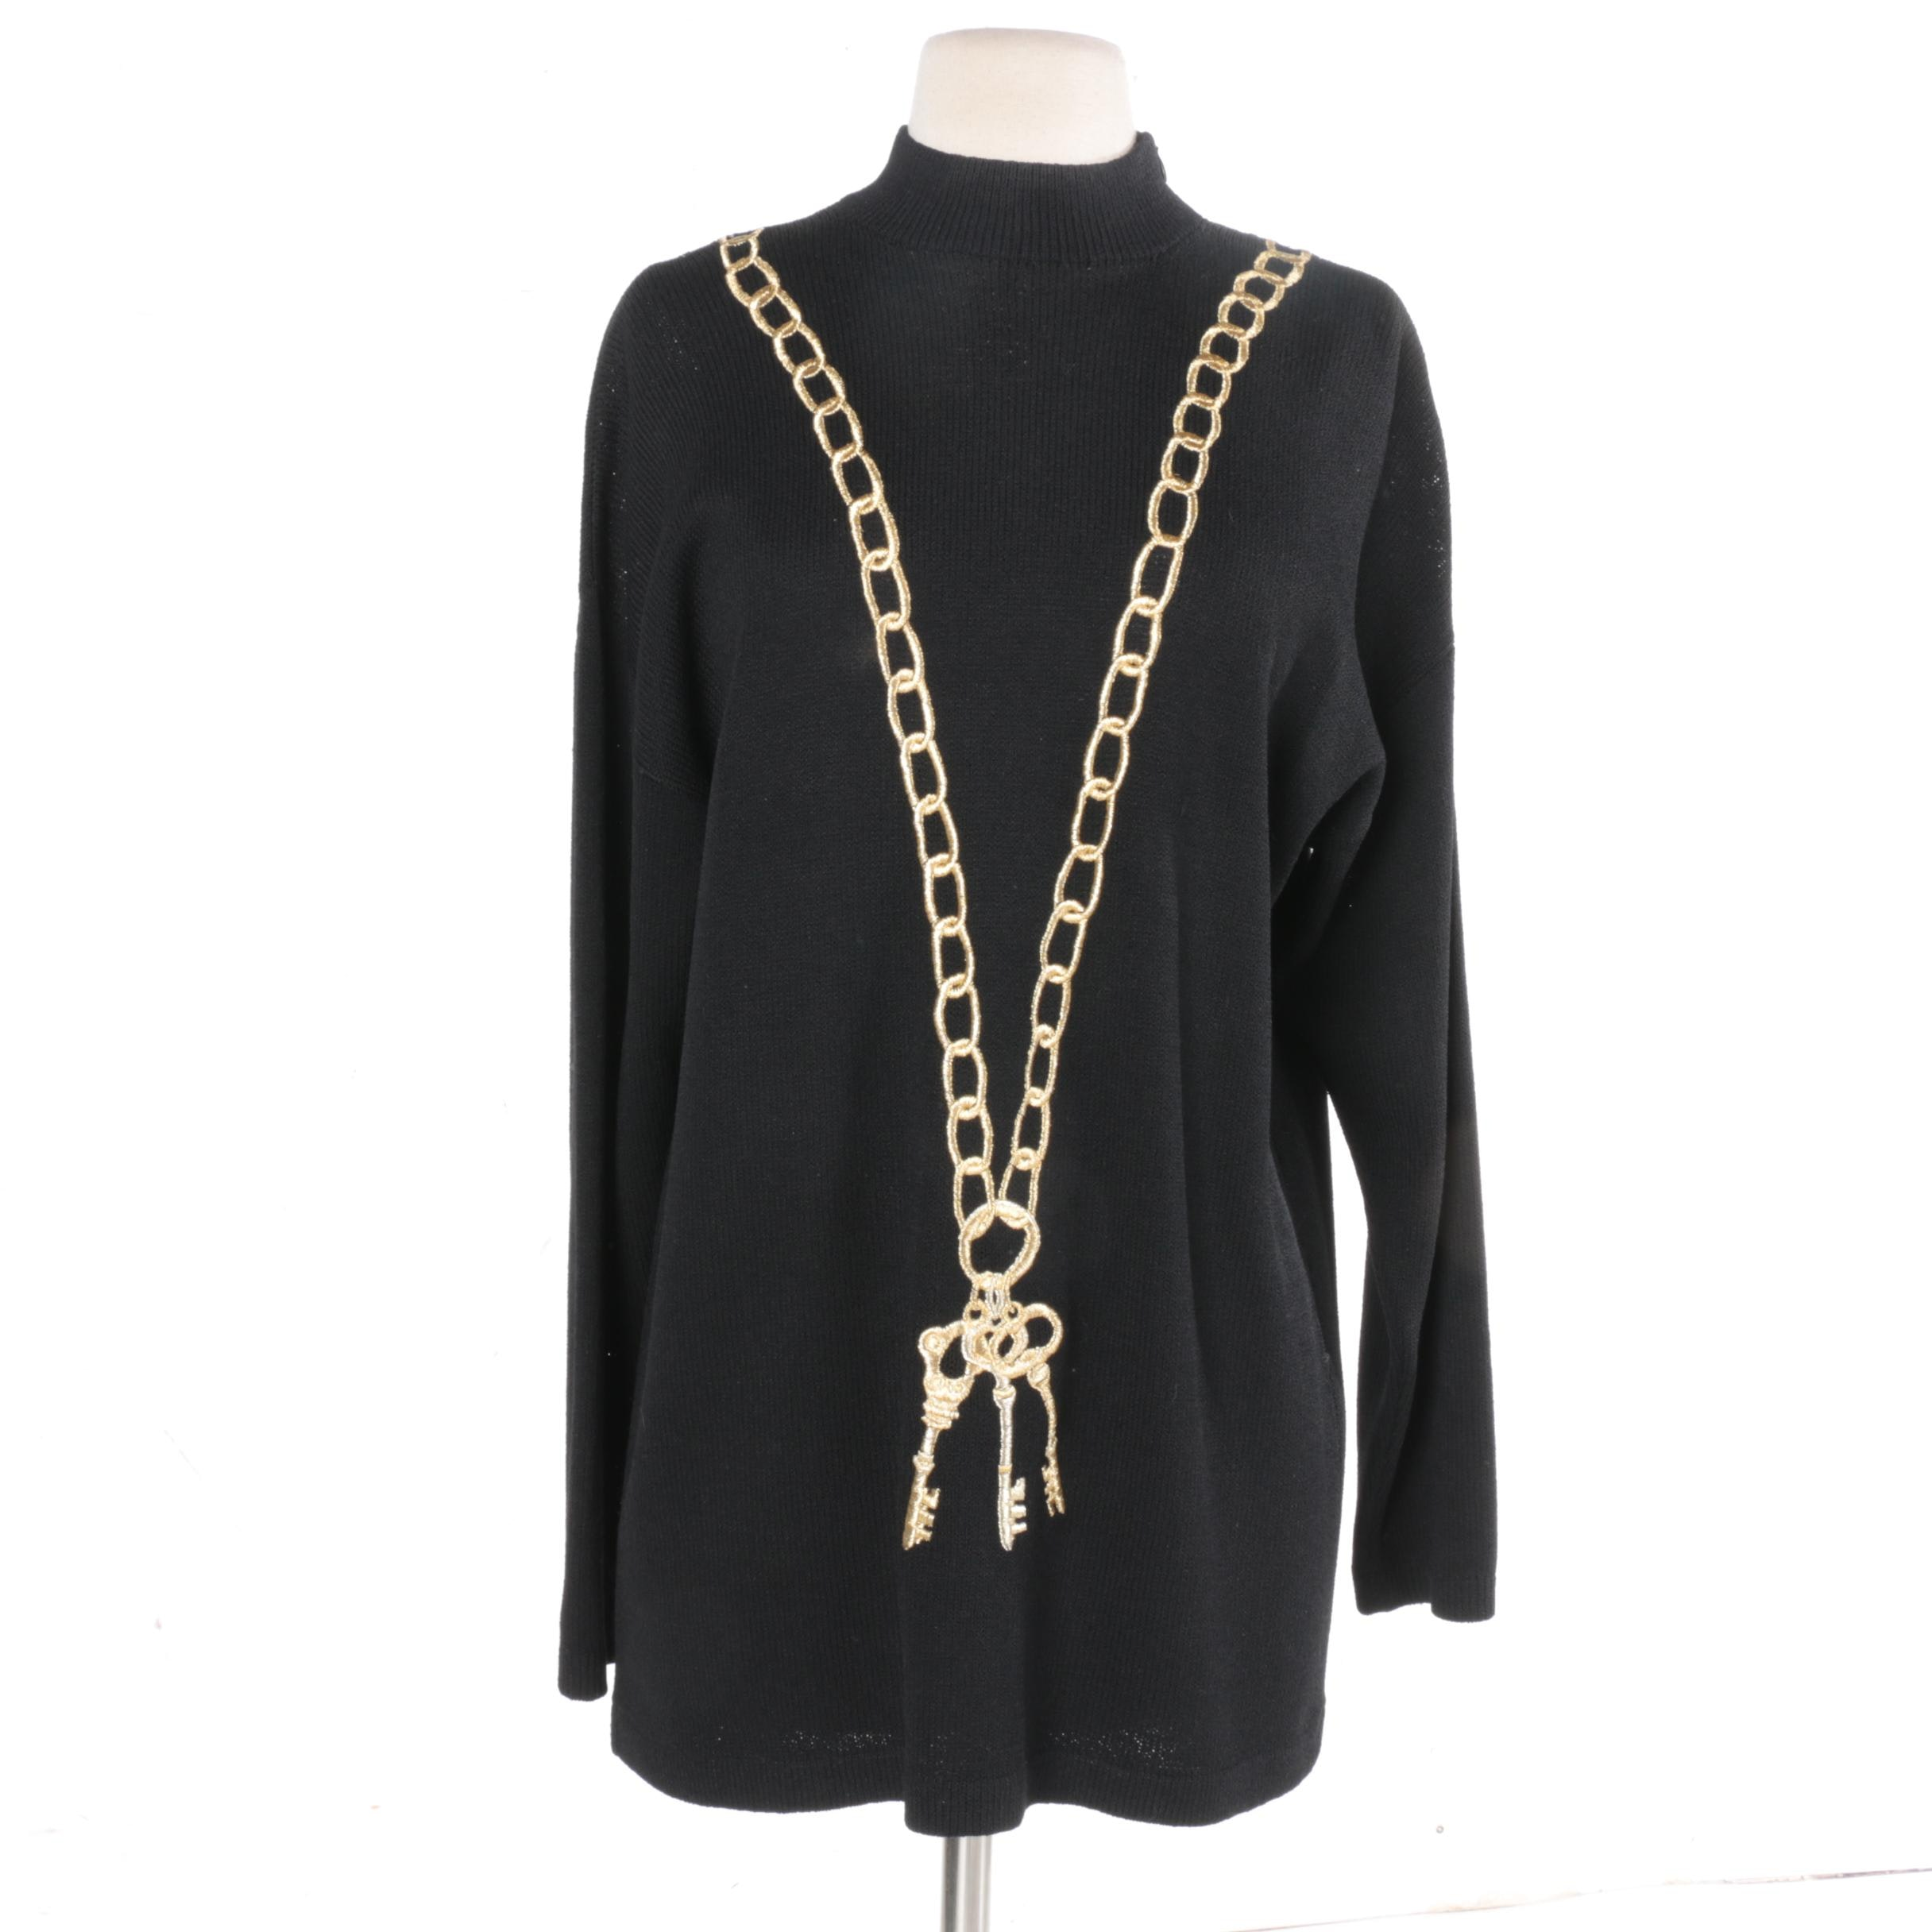 St. John Separates Embroidered Black Knit Sweater